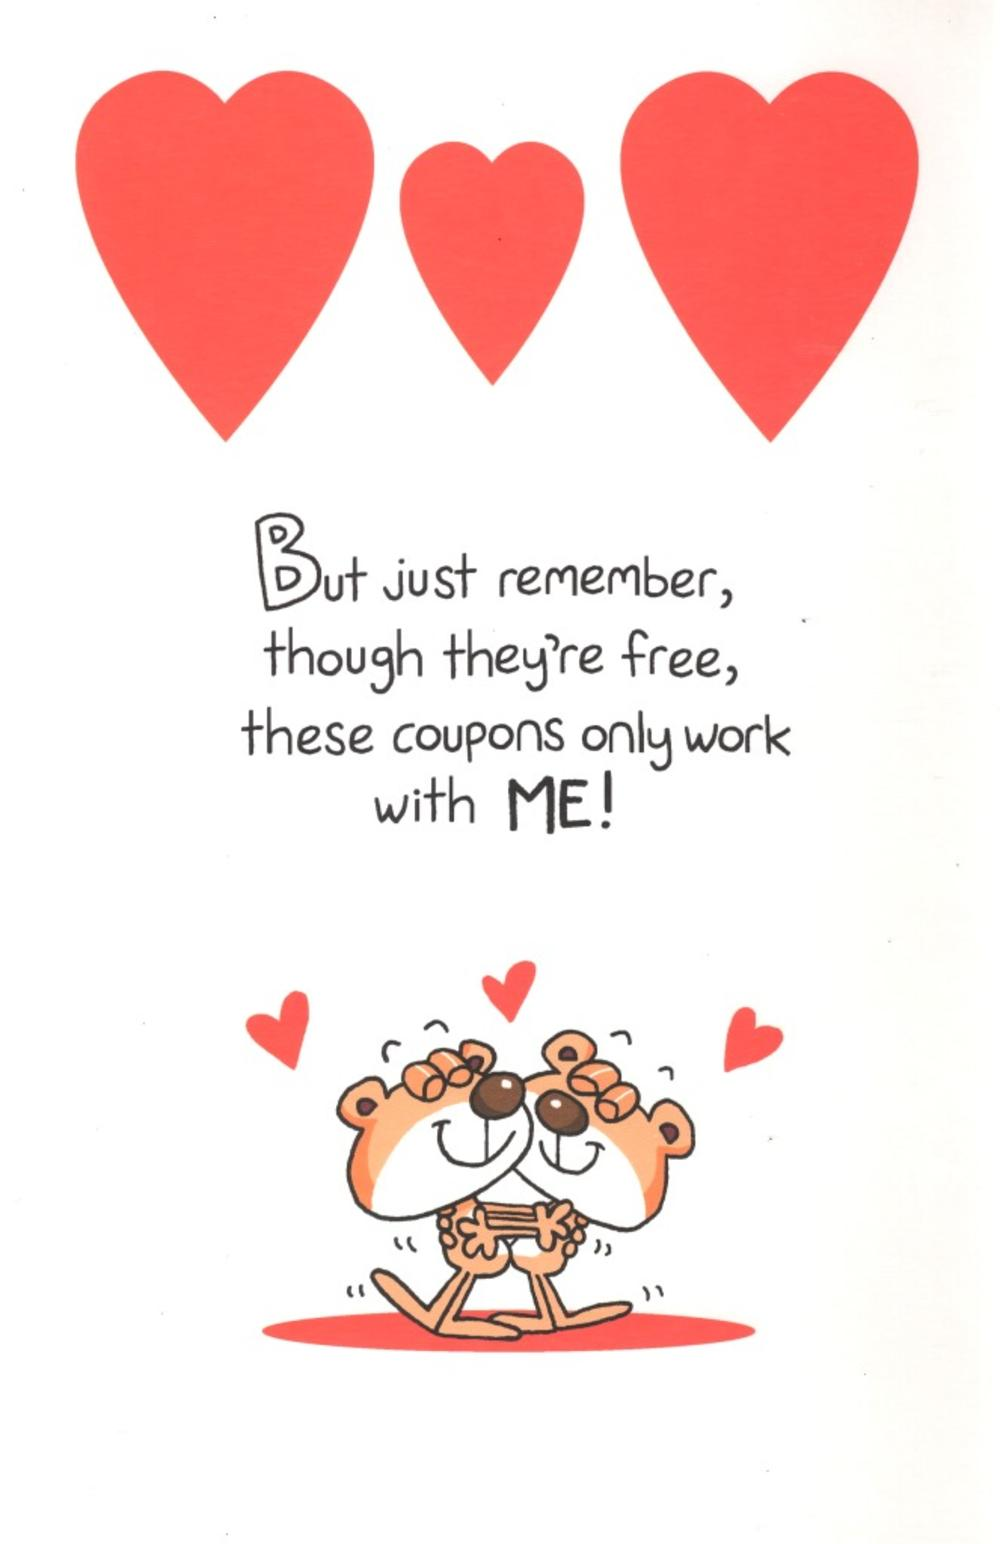 husband valentine's day card with coupons  cards  love kates